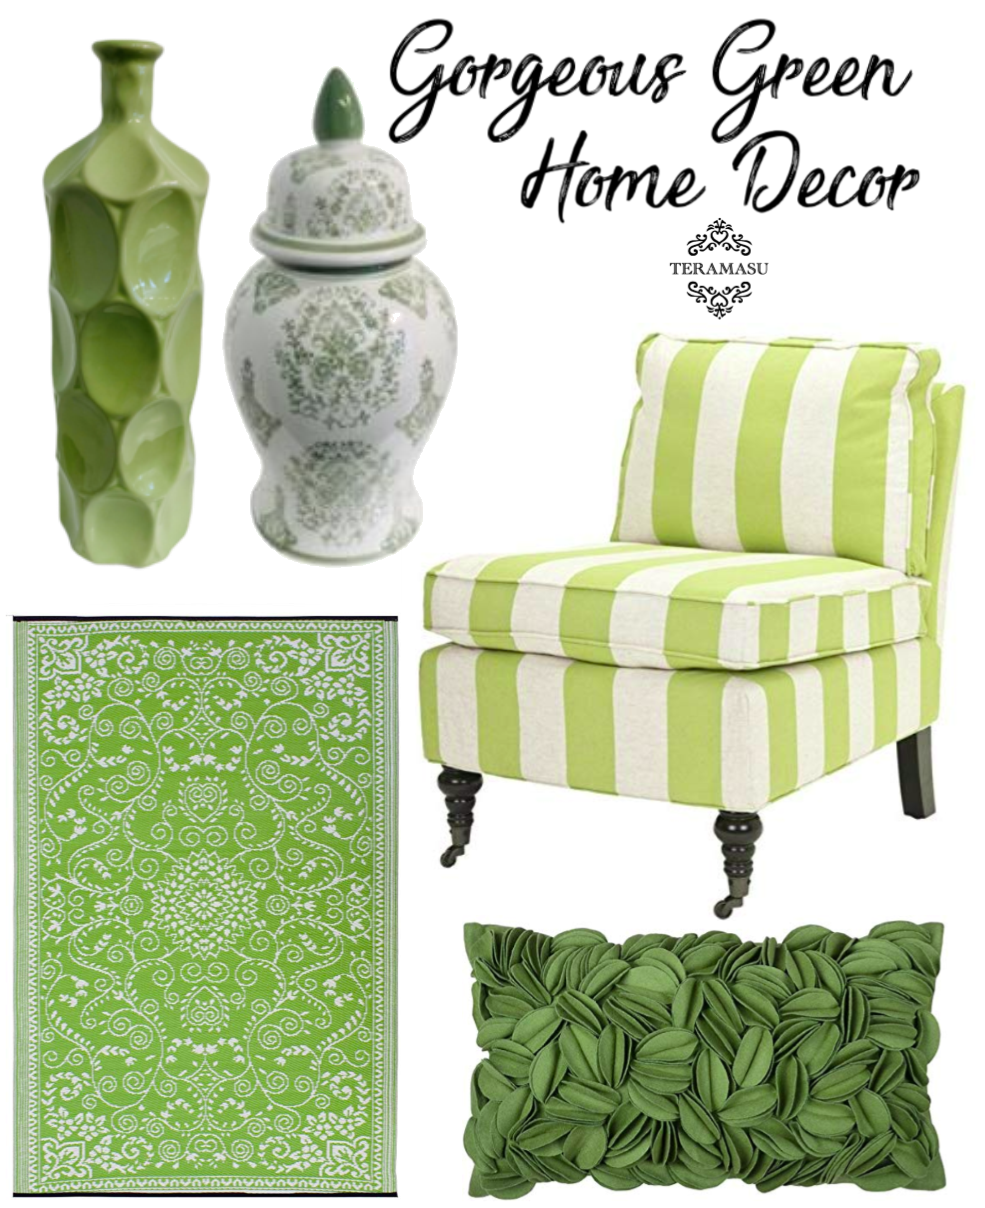 Monday Must-Haves: Classic & Gorgeous Green and White Home Decor Lifestyle Inspiration from Teramasu